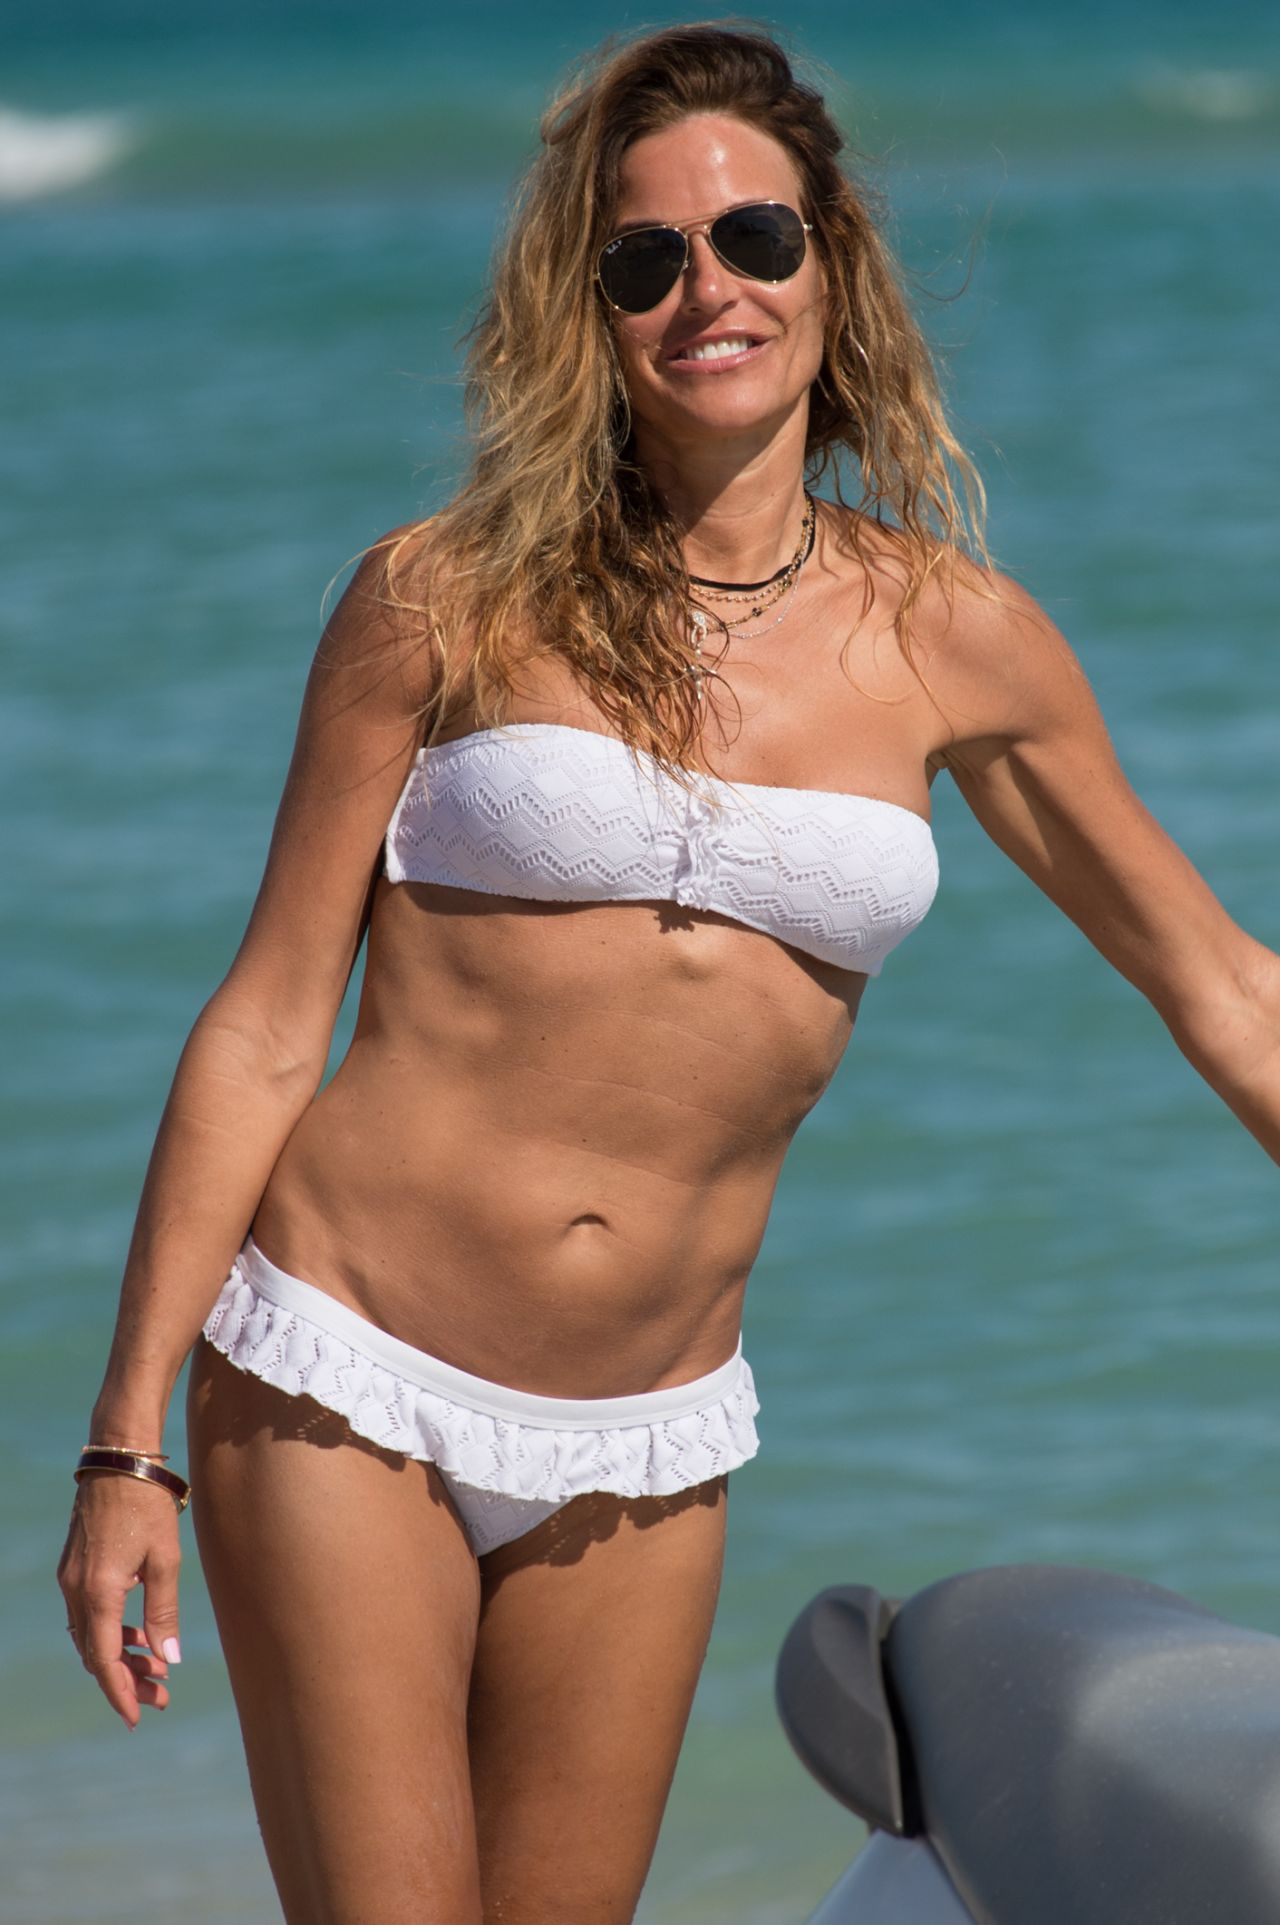 Kelly Bensimon in White Bikini in Miami